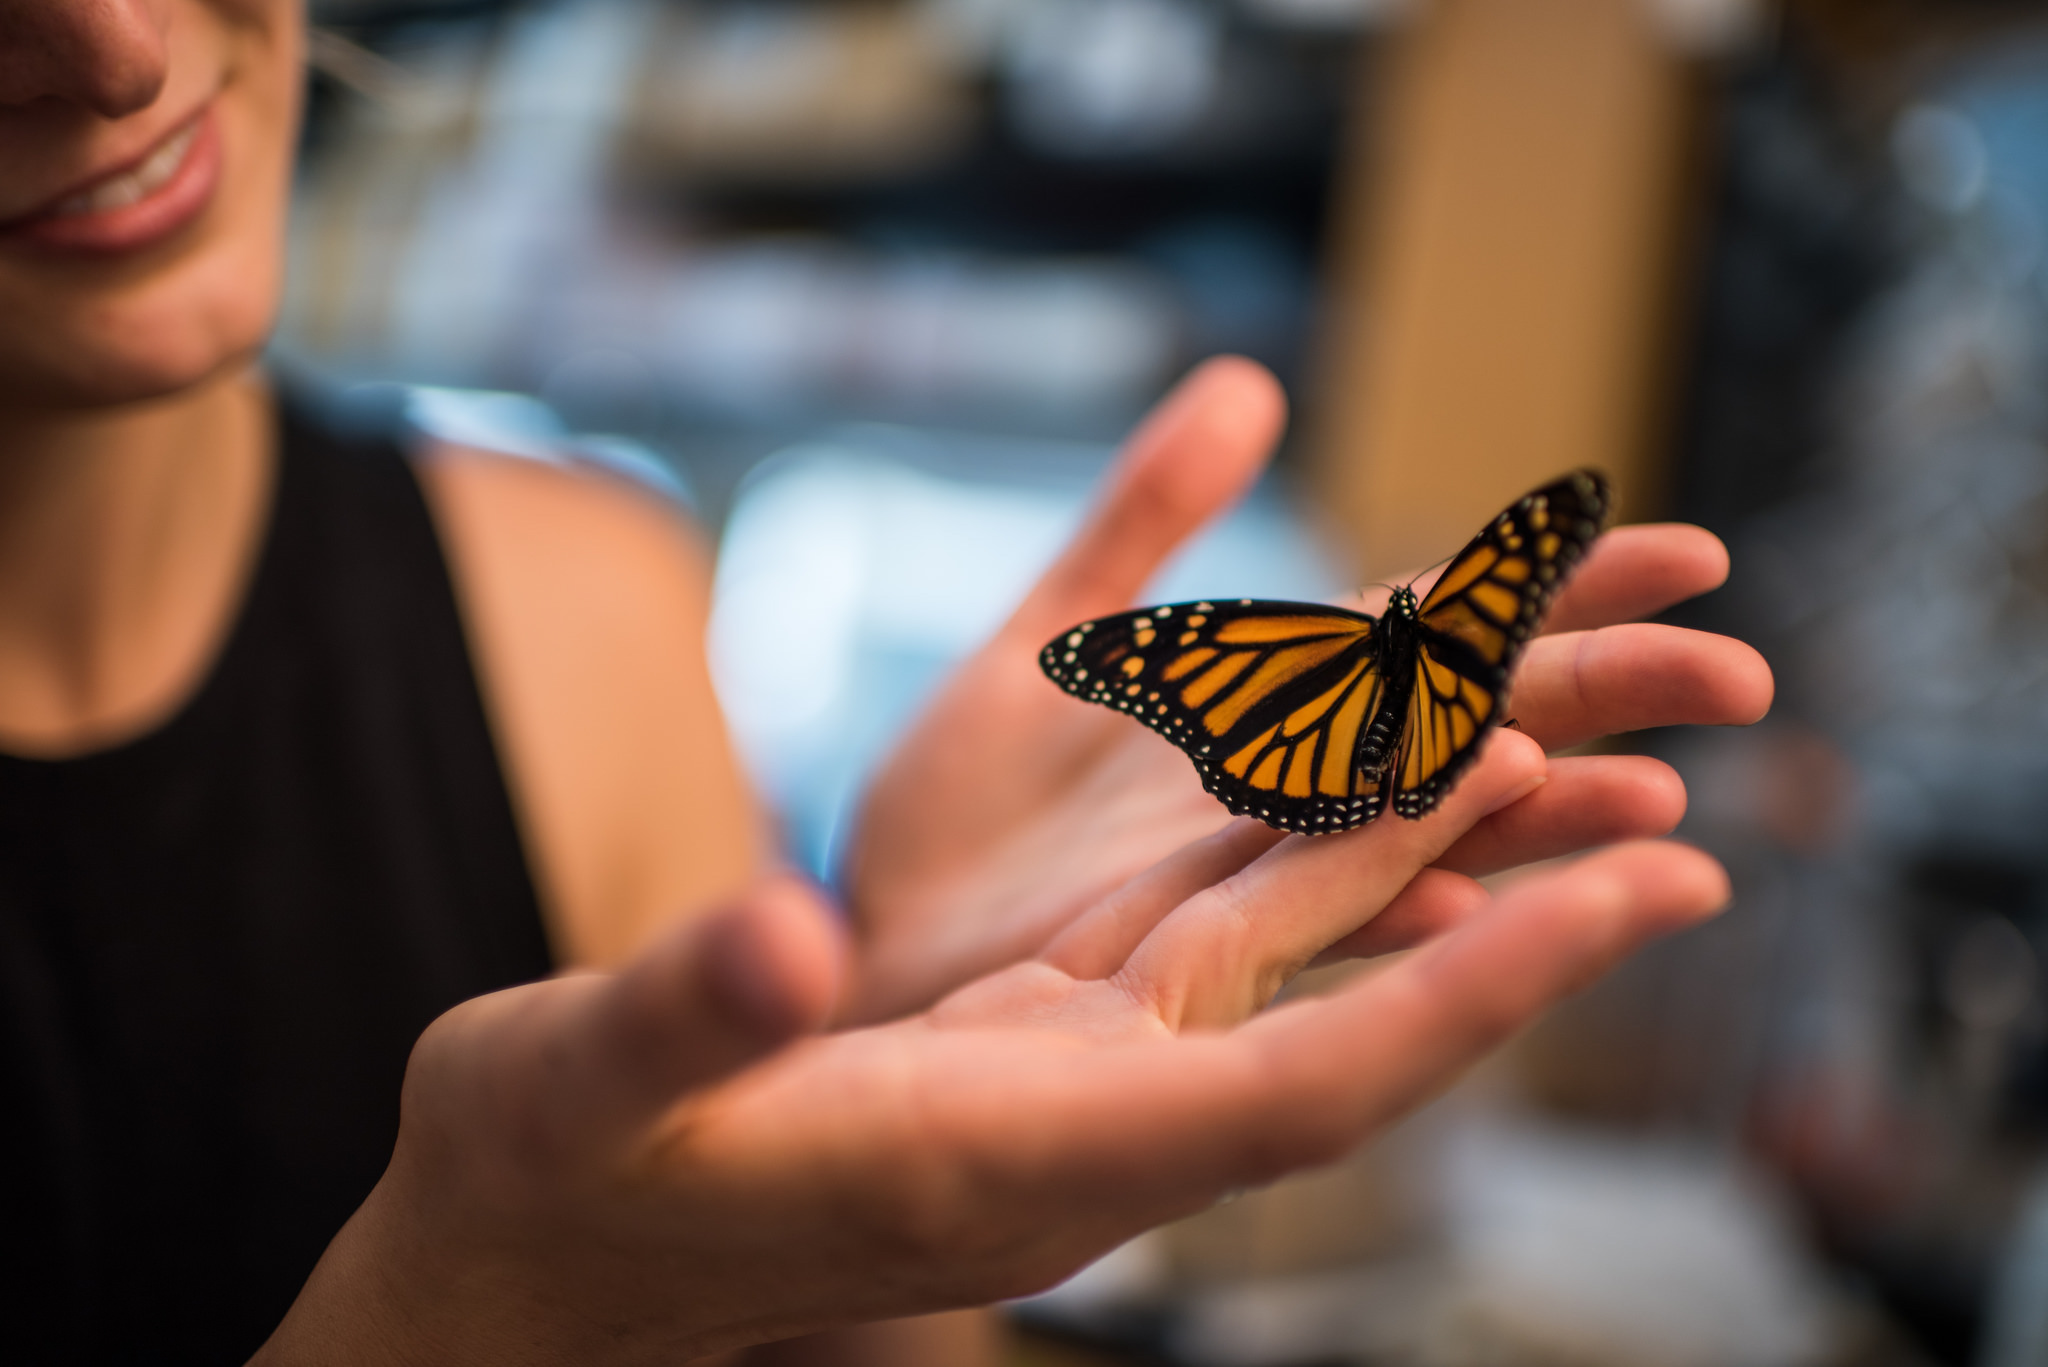 Rising carbon dioxide levels diminish the medicinal properties of milkweed plants, which make the butterflies more resilient against disease.